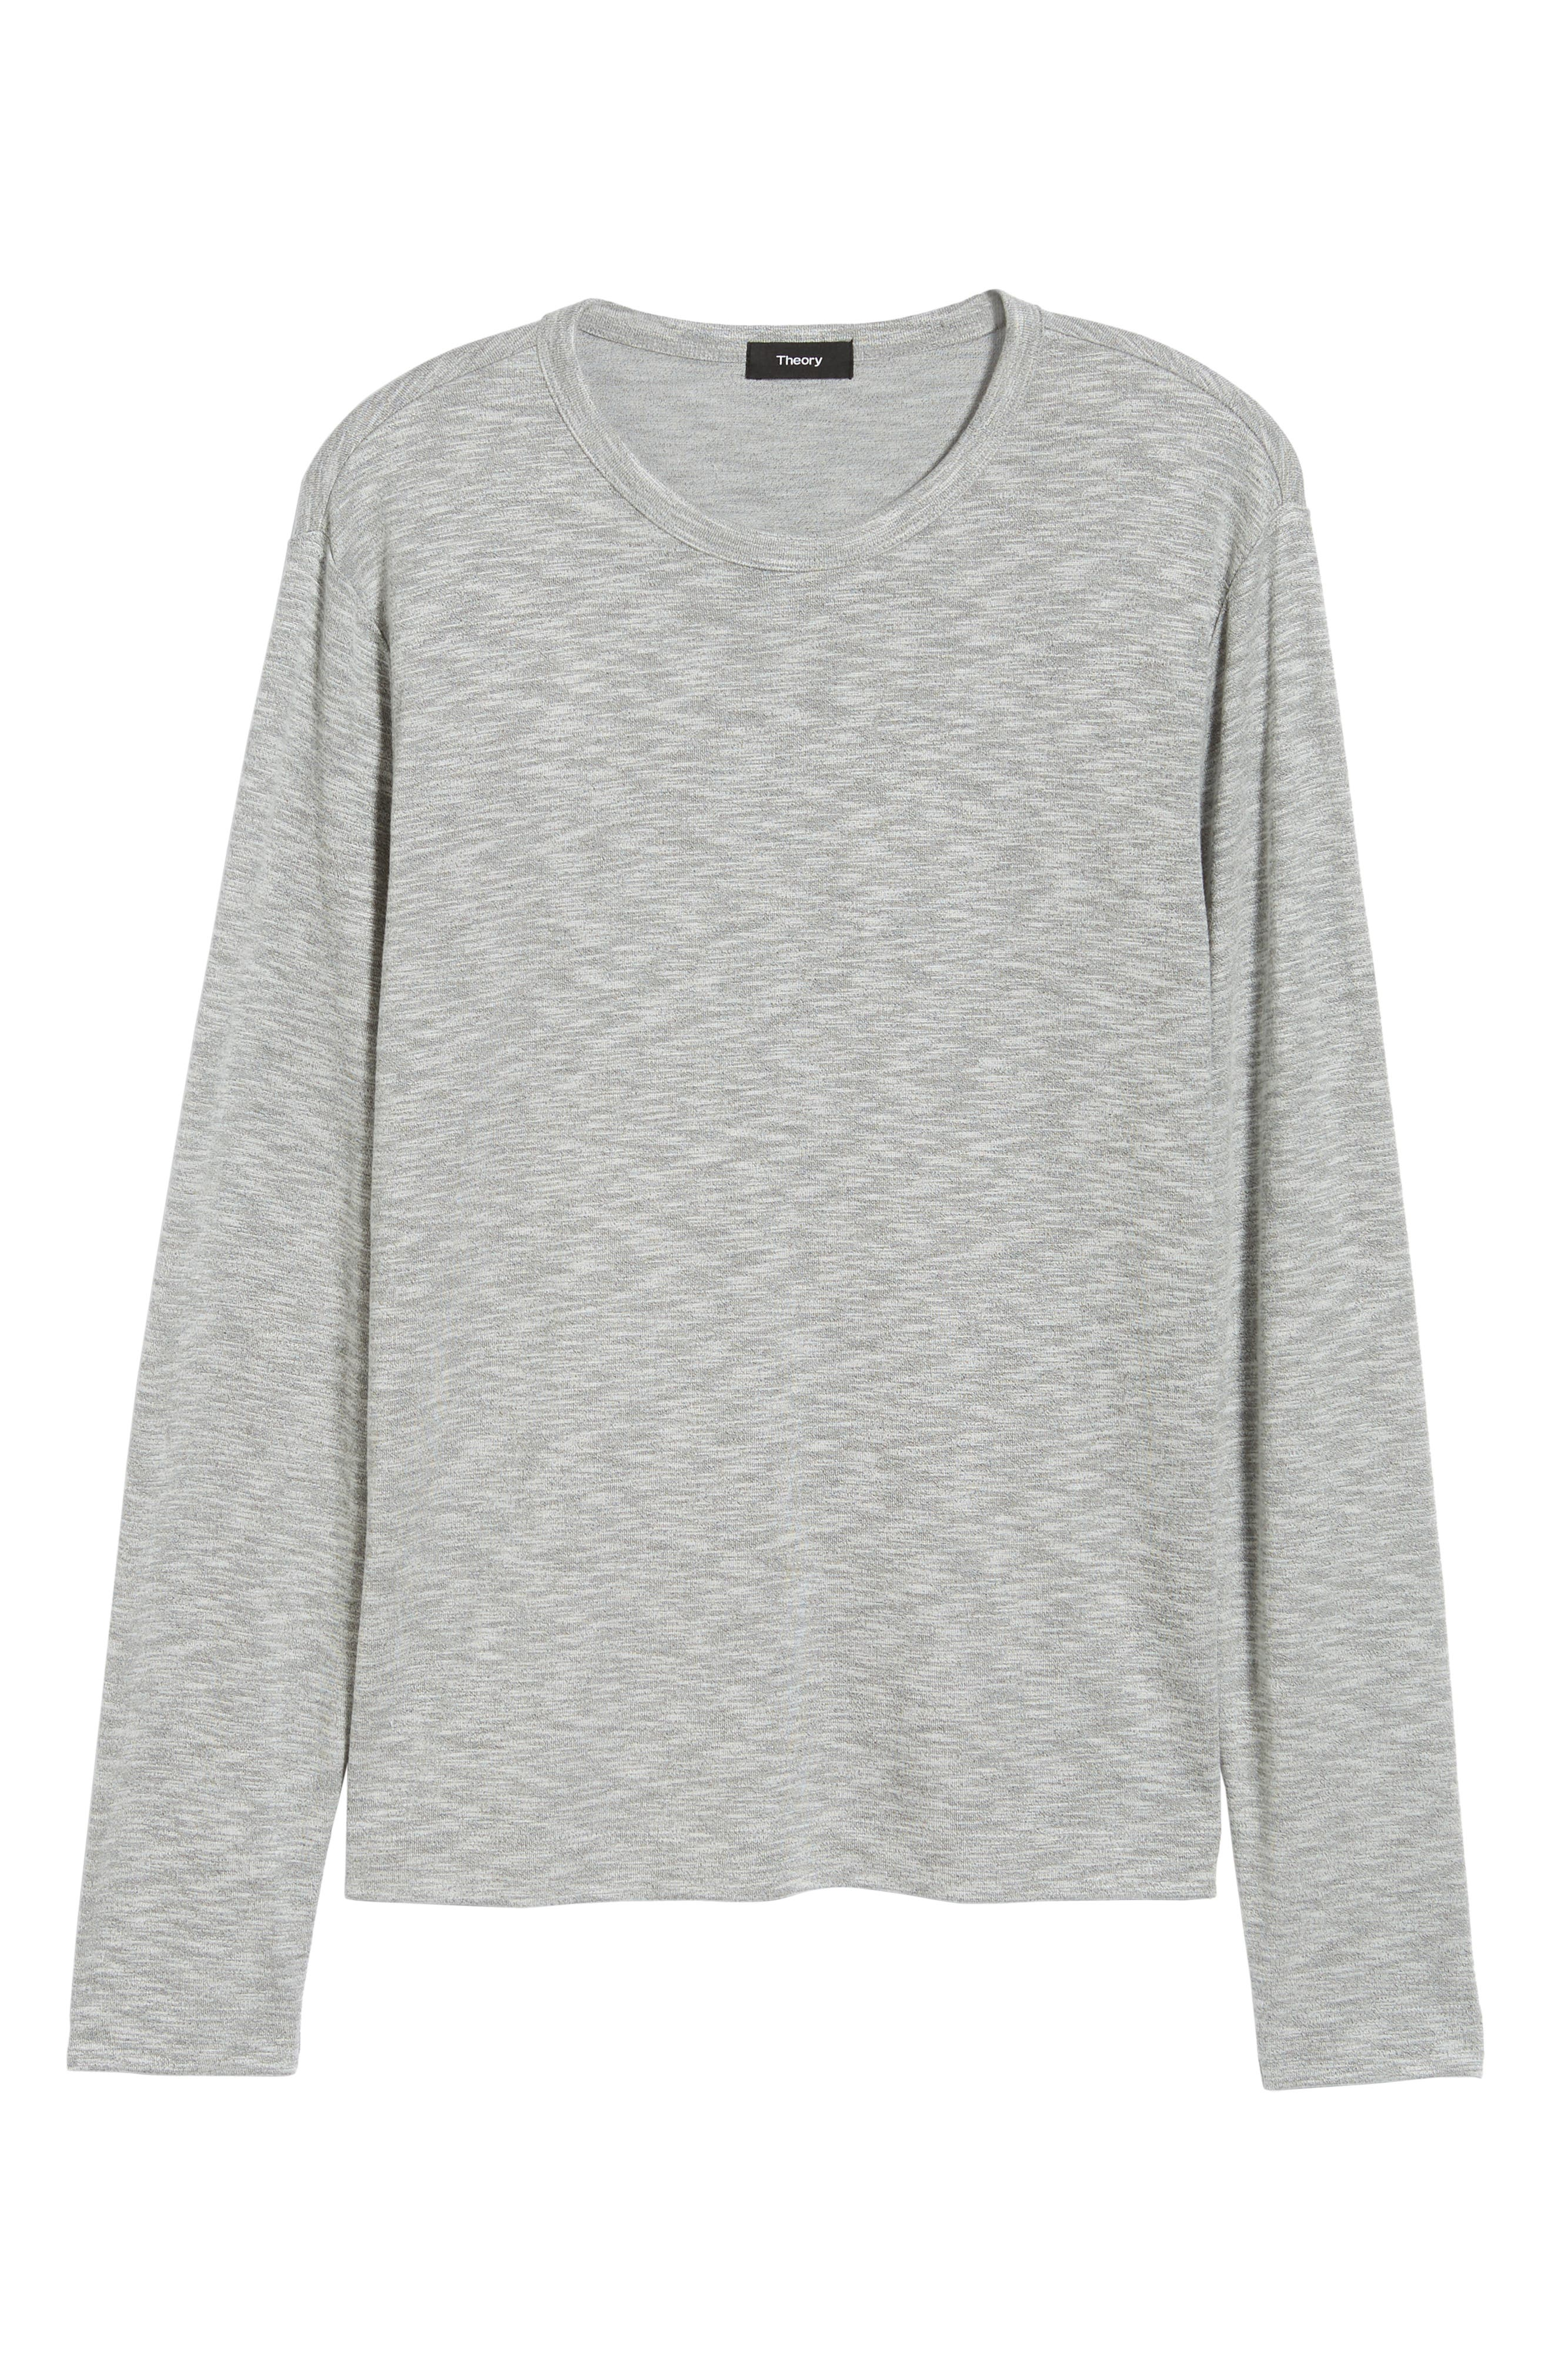 Gaskell Regular Fit Long Sleeve T-Shirt,                             Alternate thumbnail 6, color,                             GREY MULTI